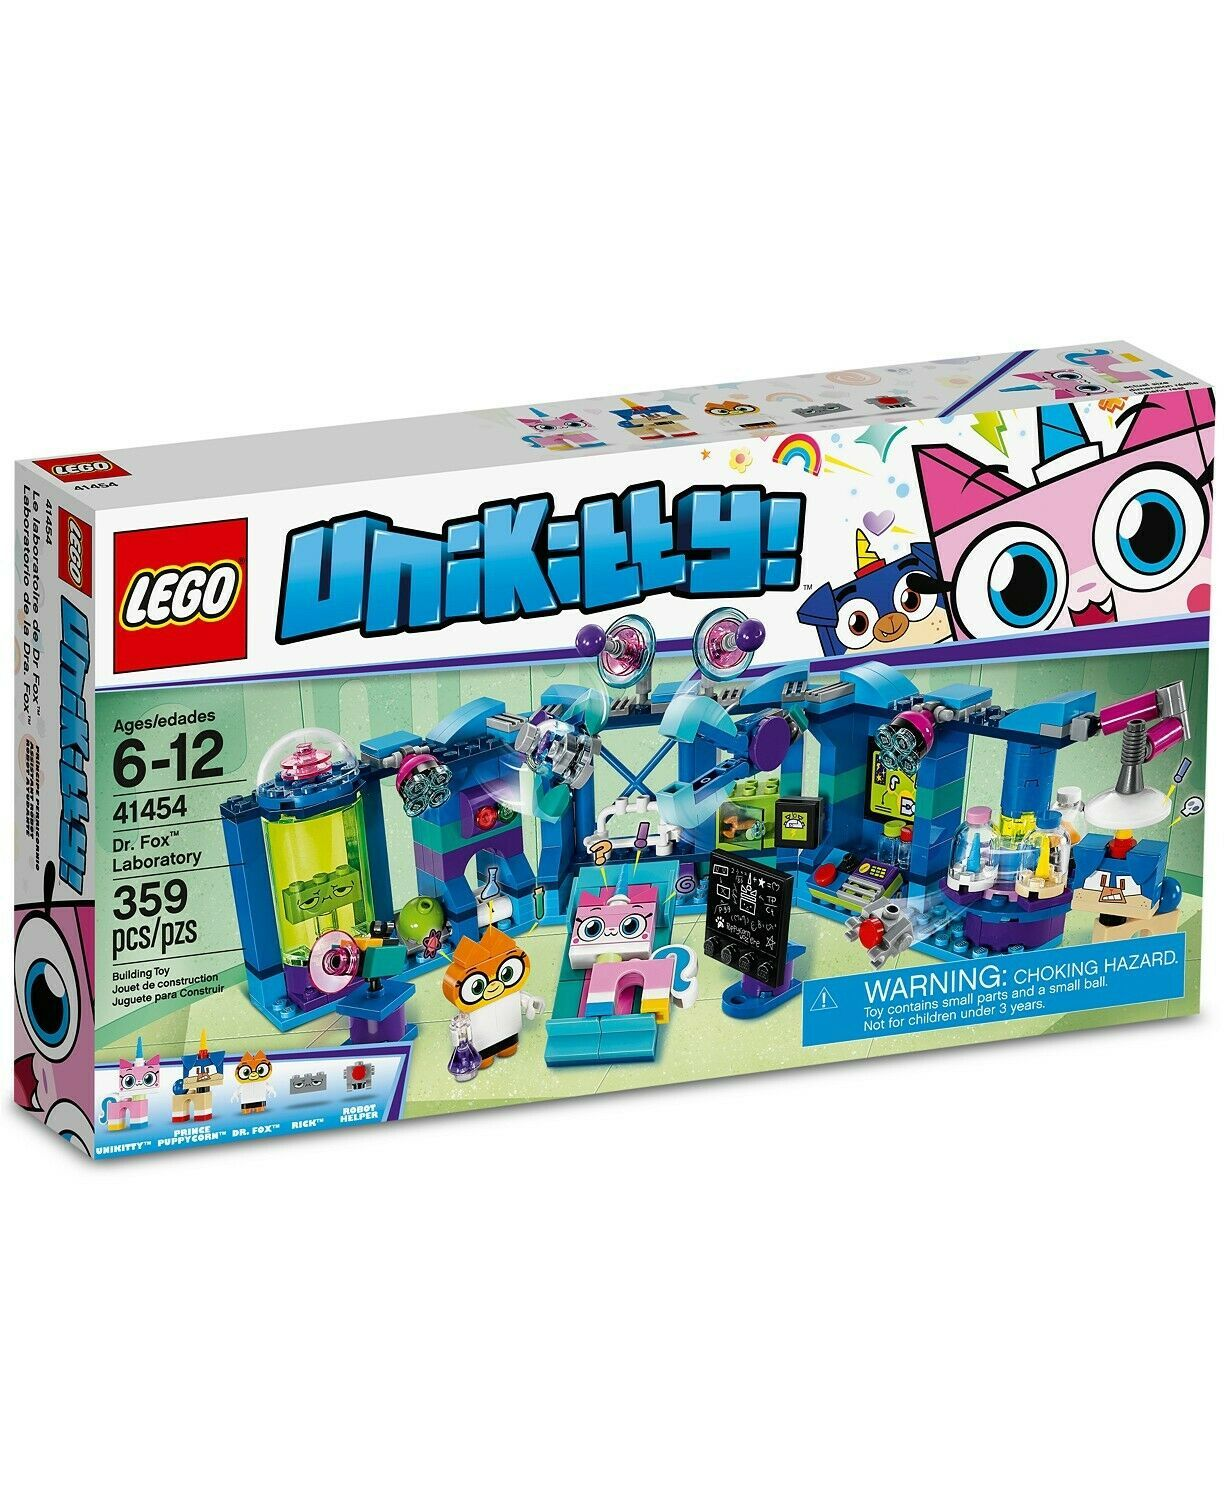 Primary image for LEGO Unikitty Dr. Fox Laboratory Set 41454, Multicolor